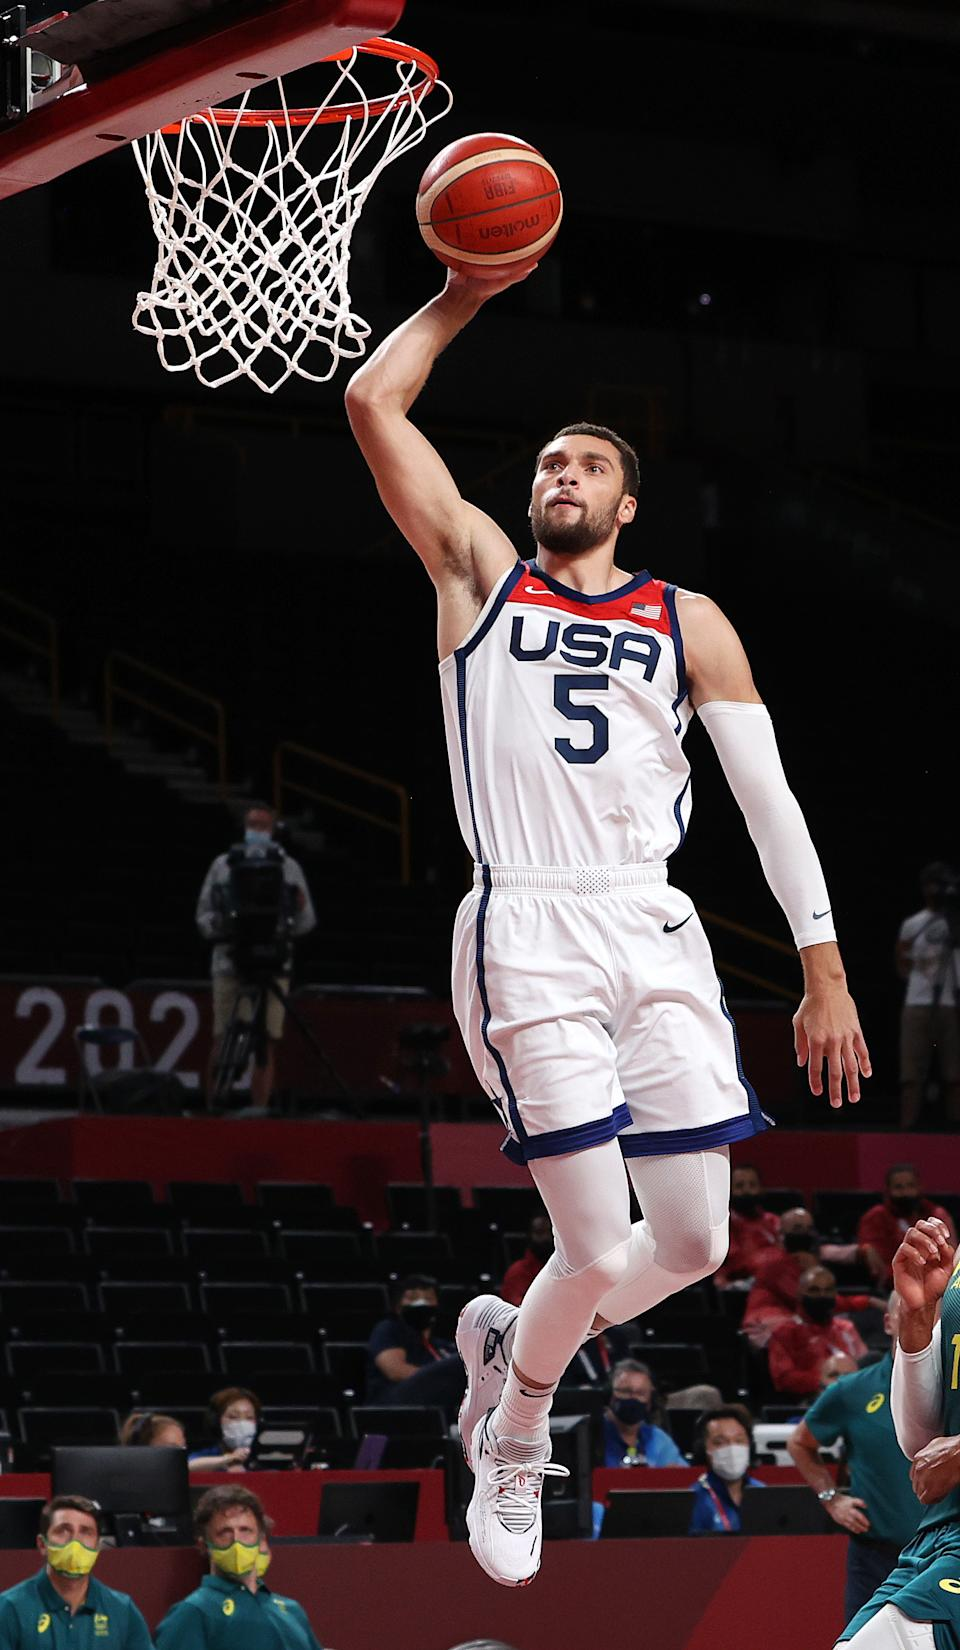 <p>Zachary Lavine #5 of Team United States goes up for a dunk against Team Australia during the second half of a Men's Basketball quarterfinals game on day thirteen of the Tokyo 2020 Olympic Games at Saitama Super Arena on August 05, 2021 in Saitama, Japan. (Photo by Kevin C. Cox/Getty Images)</p>